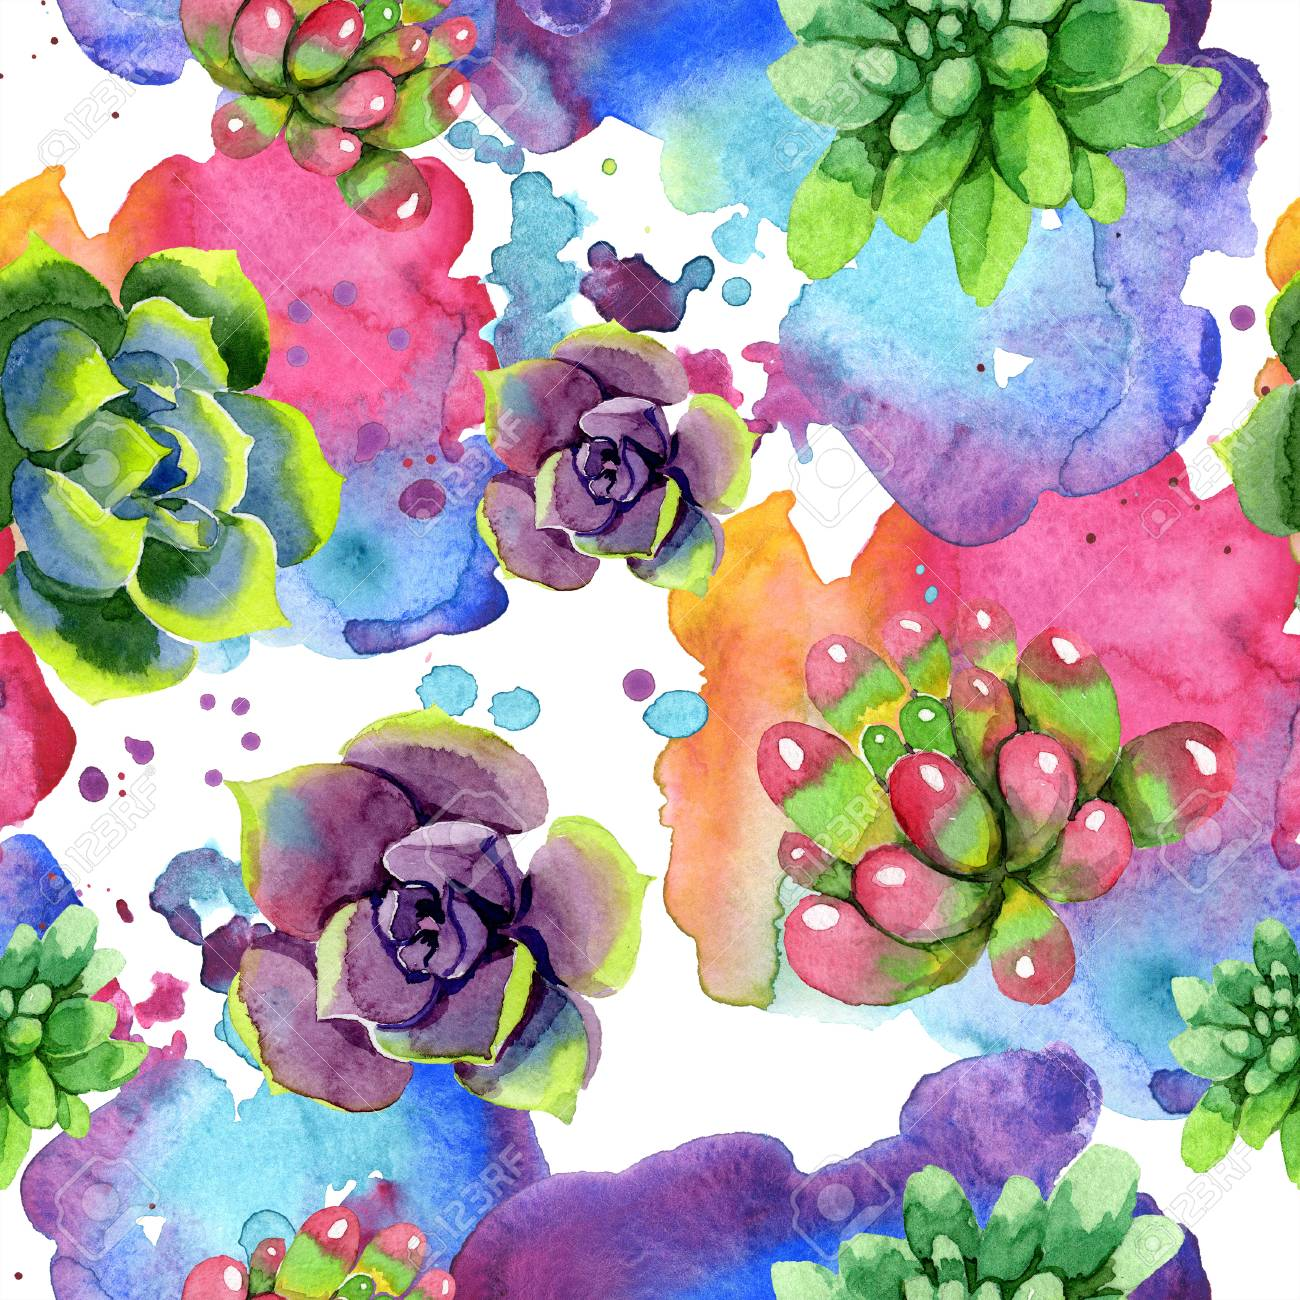 Amazing Succulent Floral Botanical Flower Watercolor Background Stock Photo Picture And Royalty Free Image Image 113293988